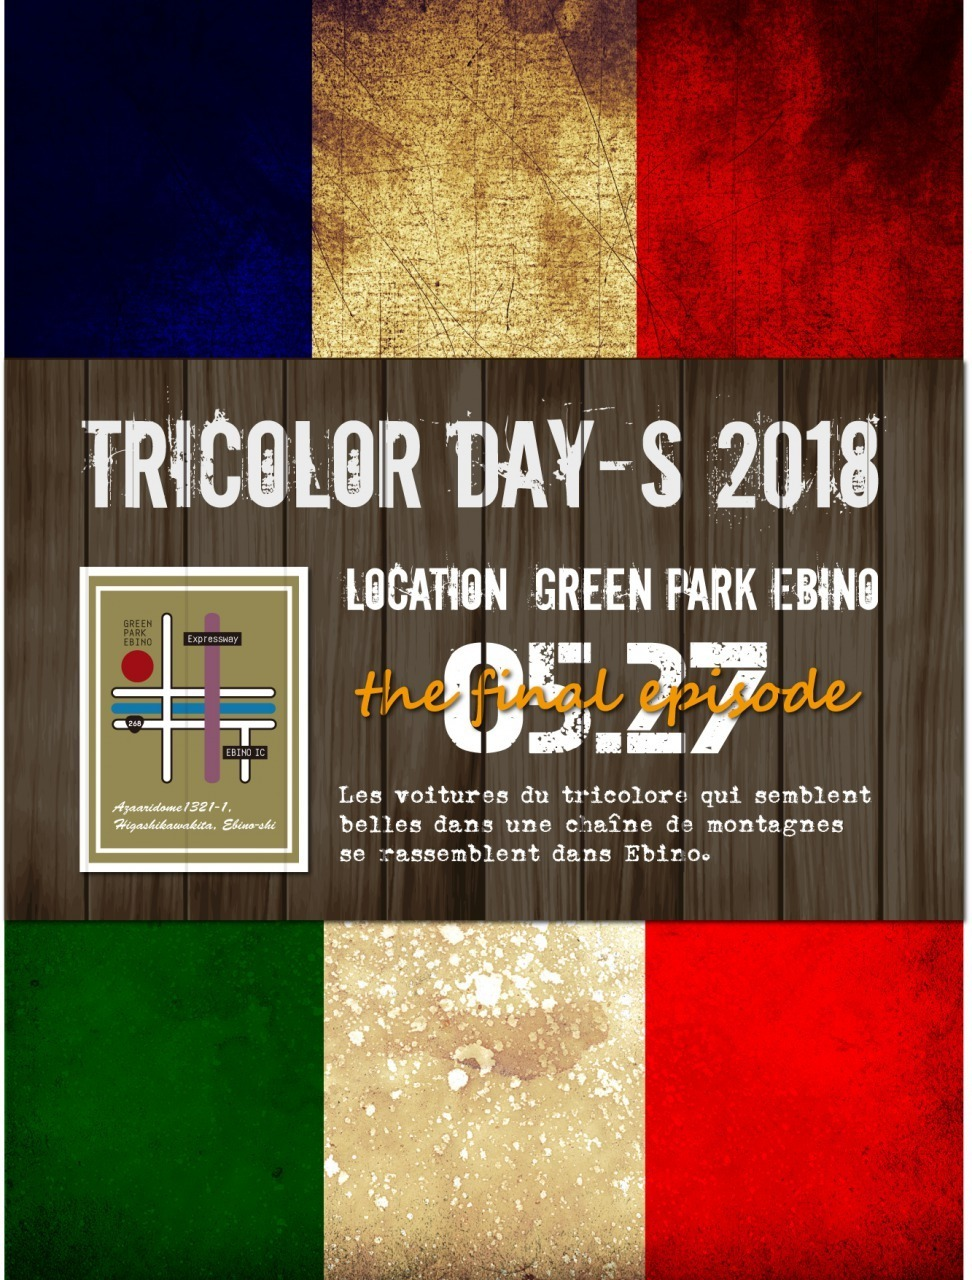 tricolorday-s 2018_e0233267_14590915.jpeg